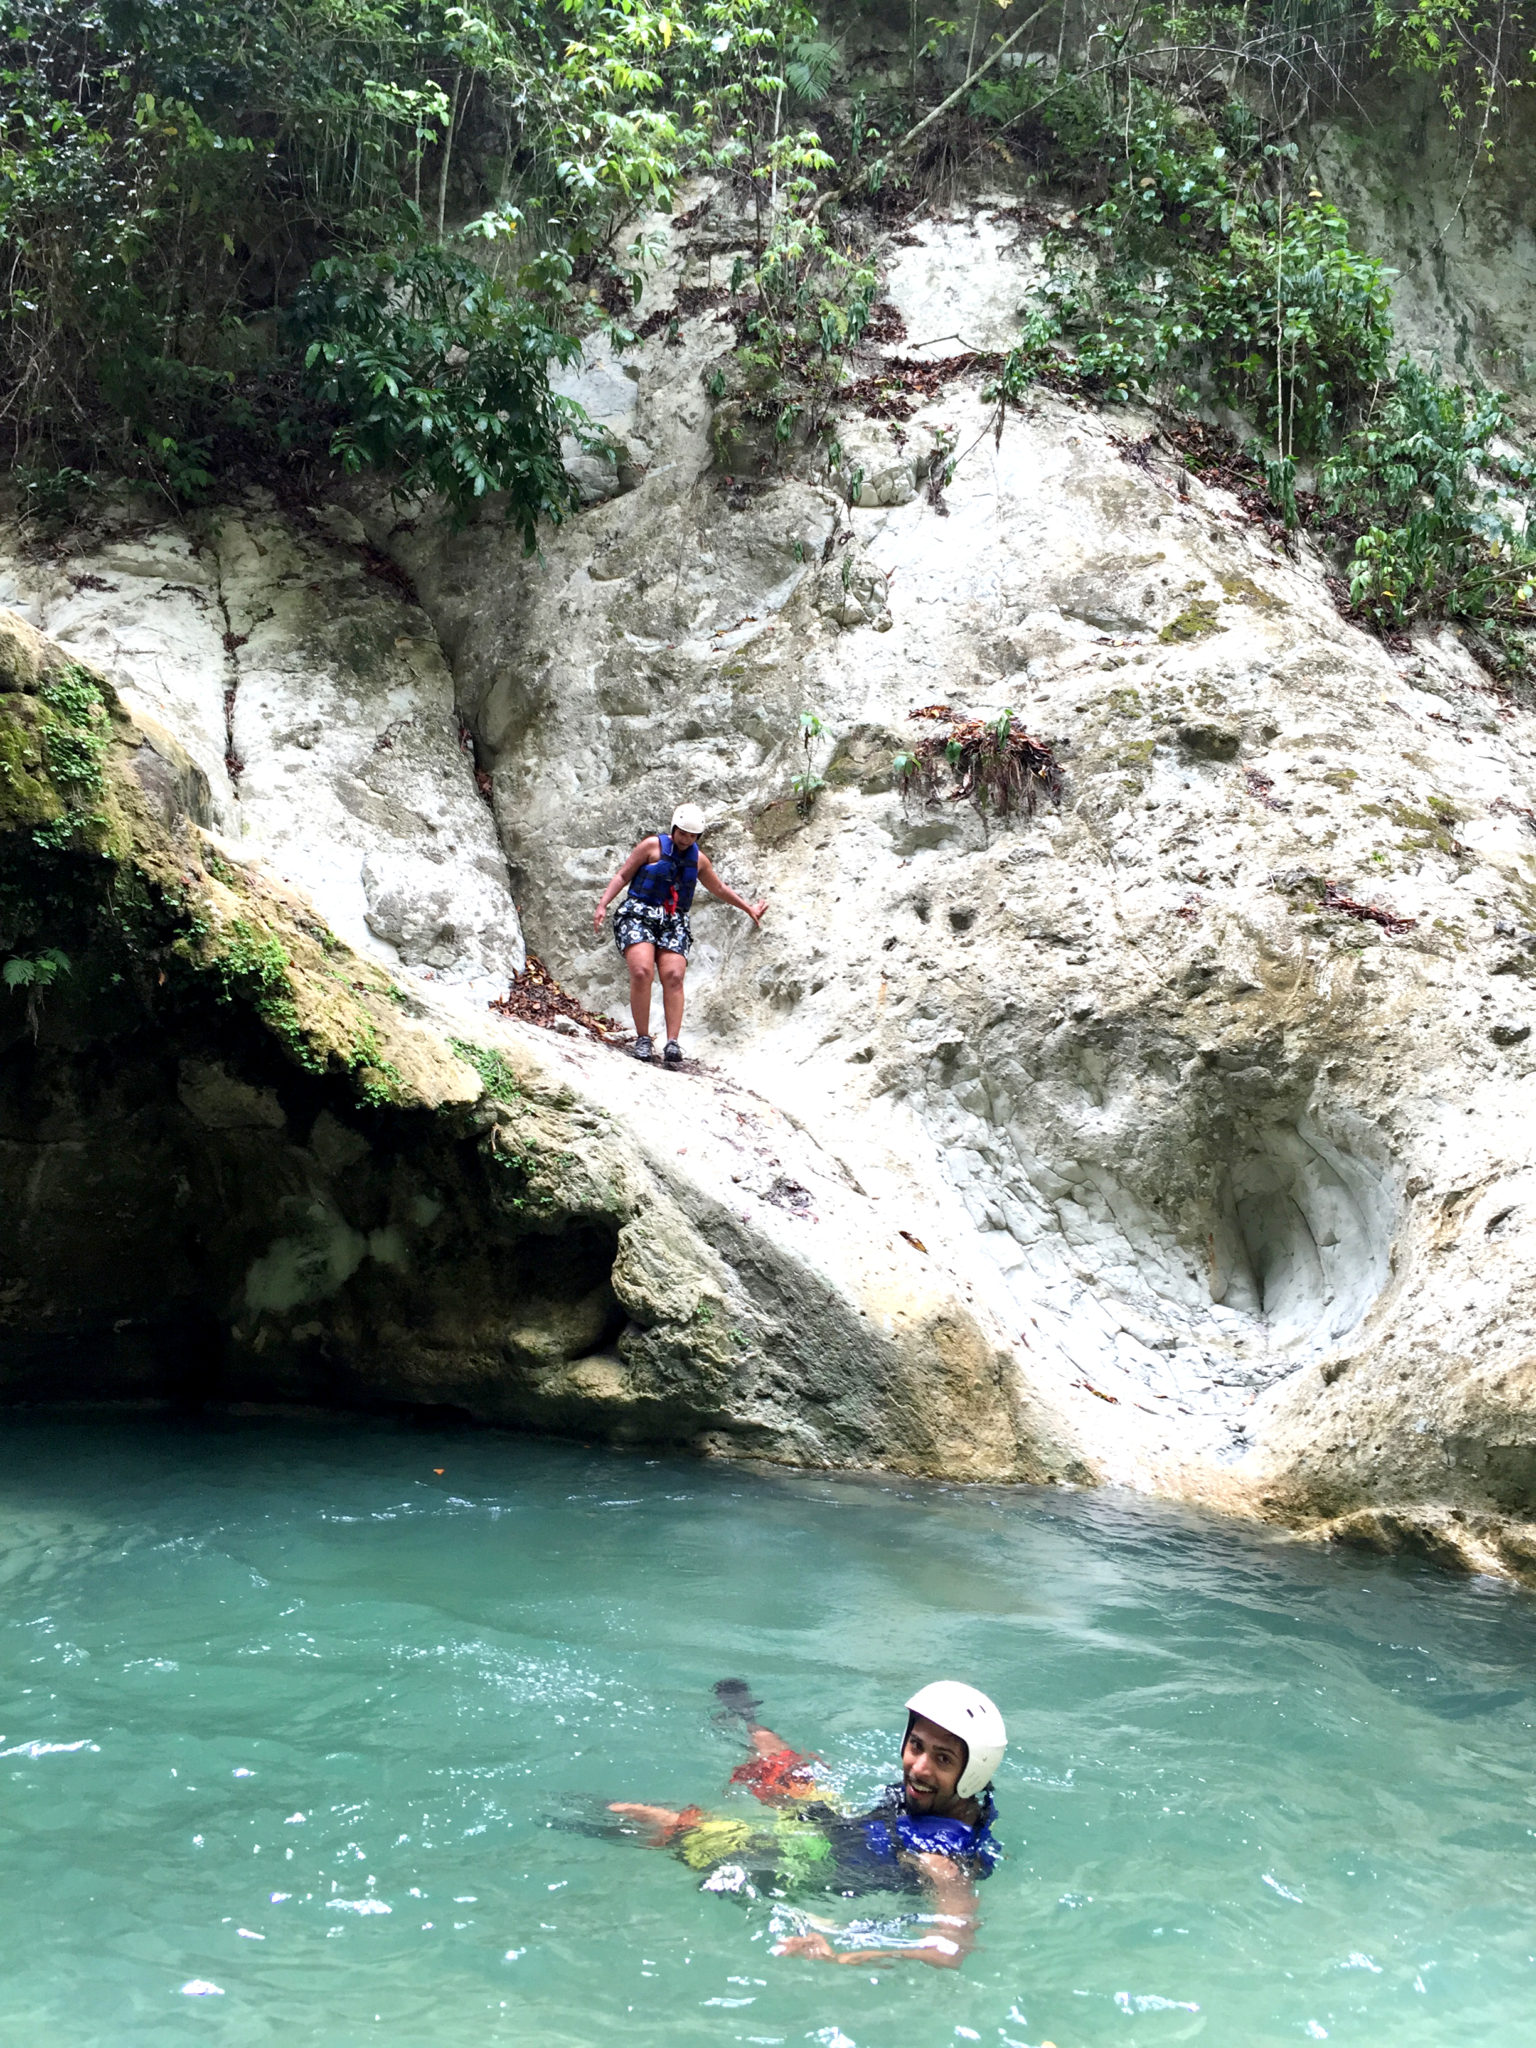 Republique_dominicaine_damajagua_canyoning_preparation_saut